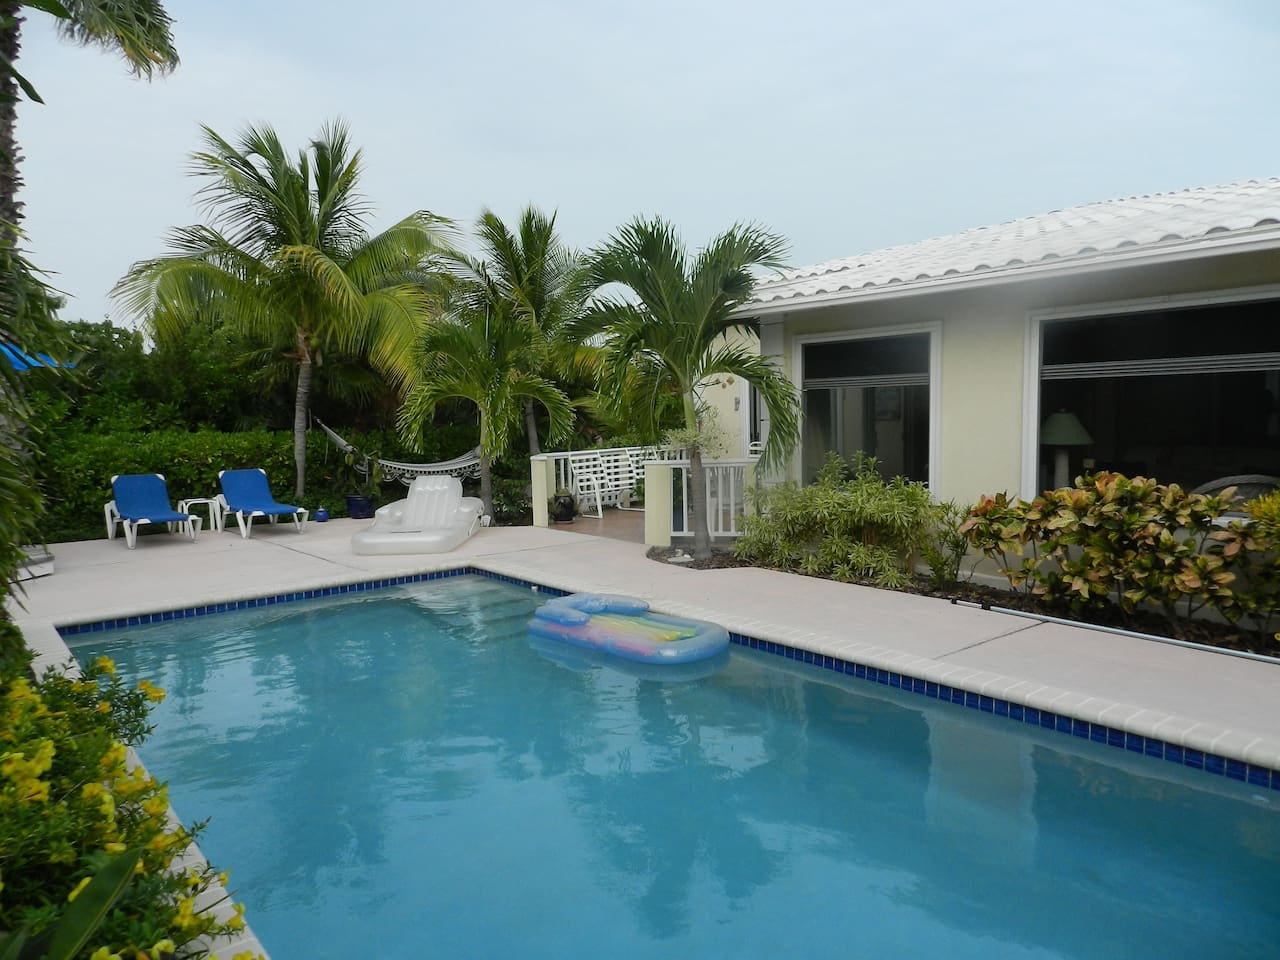 Private back yard with private pool